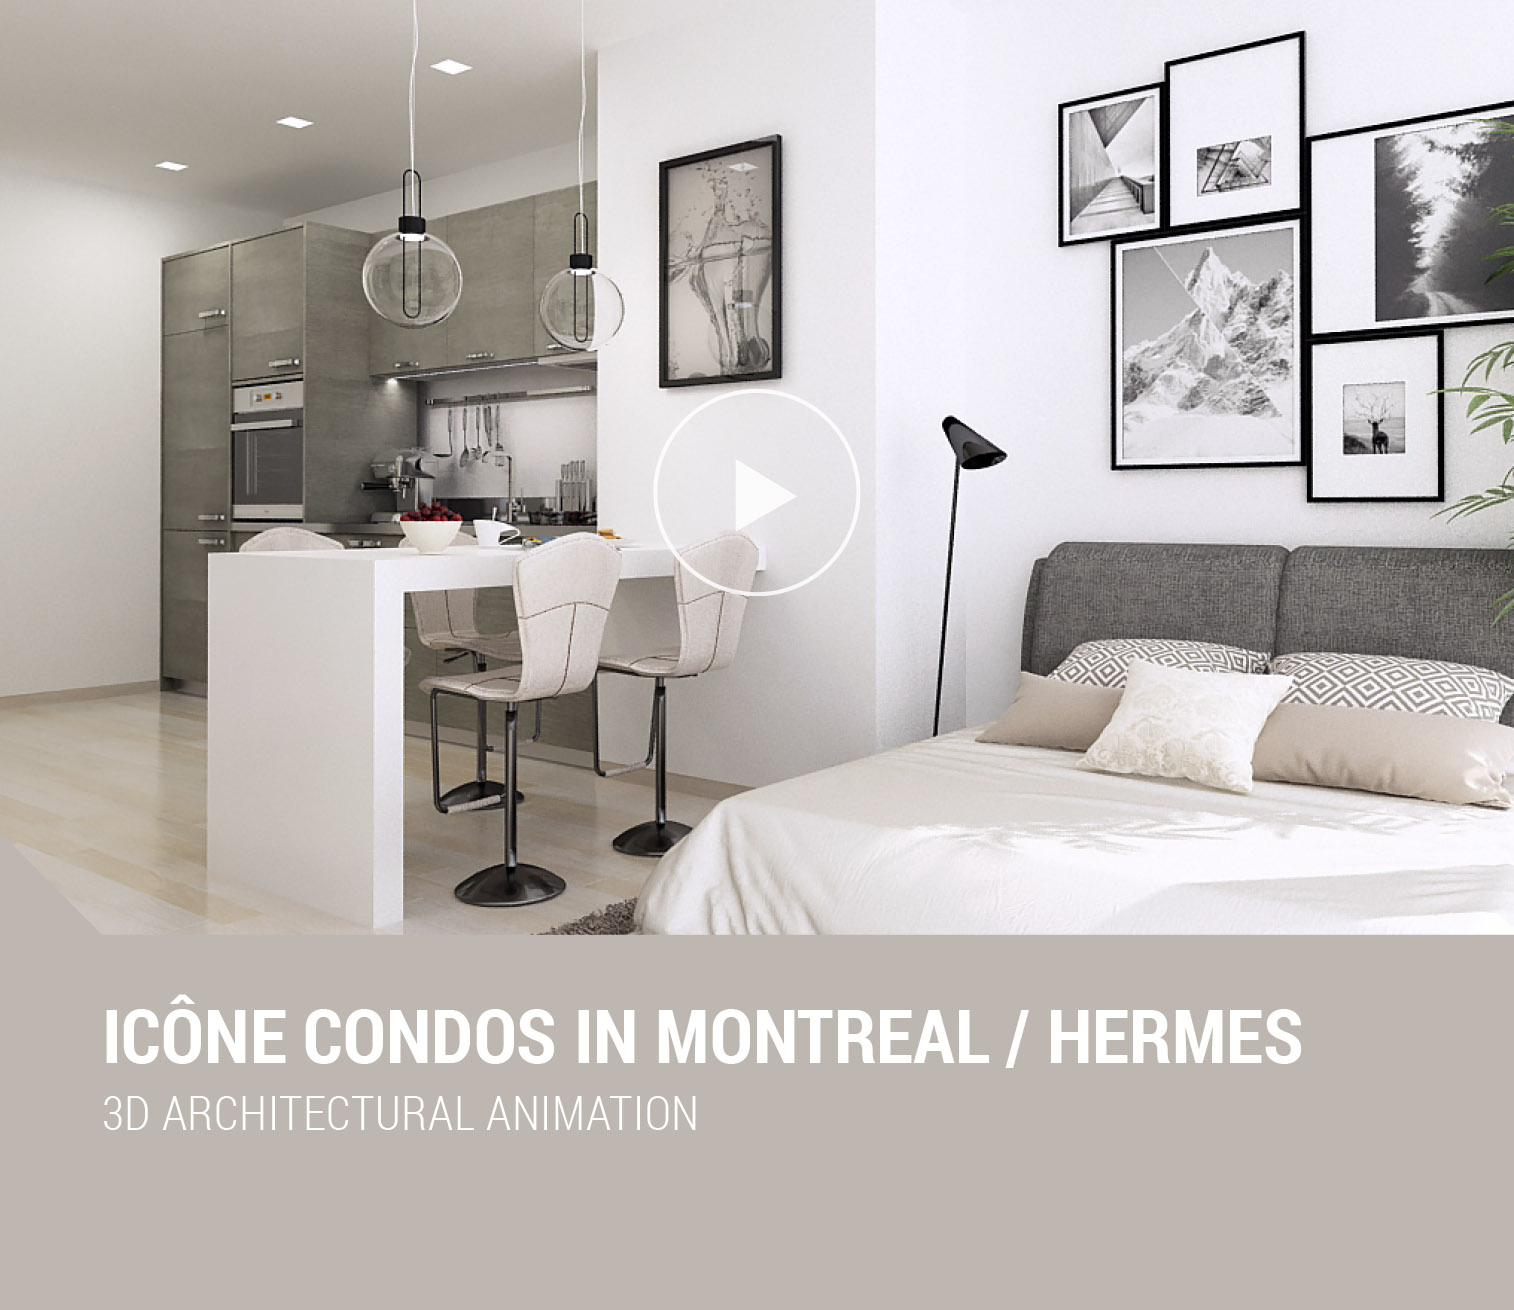 Schema Dimitra Chrona designer, creative director, architectural, 3D visualization, 3D Rendering, branding websites, digital, graphic design, interior design, real estate, luxury property, staging, museum, virtual, art, brochures, exhibitions, logotype, logo, Canada Quebec Montreal Athens Greece schema design icone condominiums hermes video small.jpg